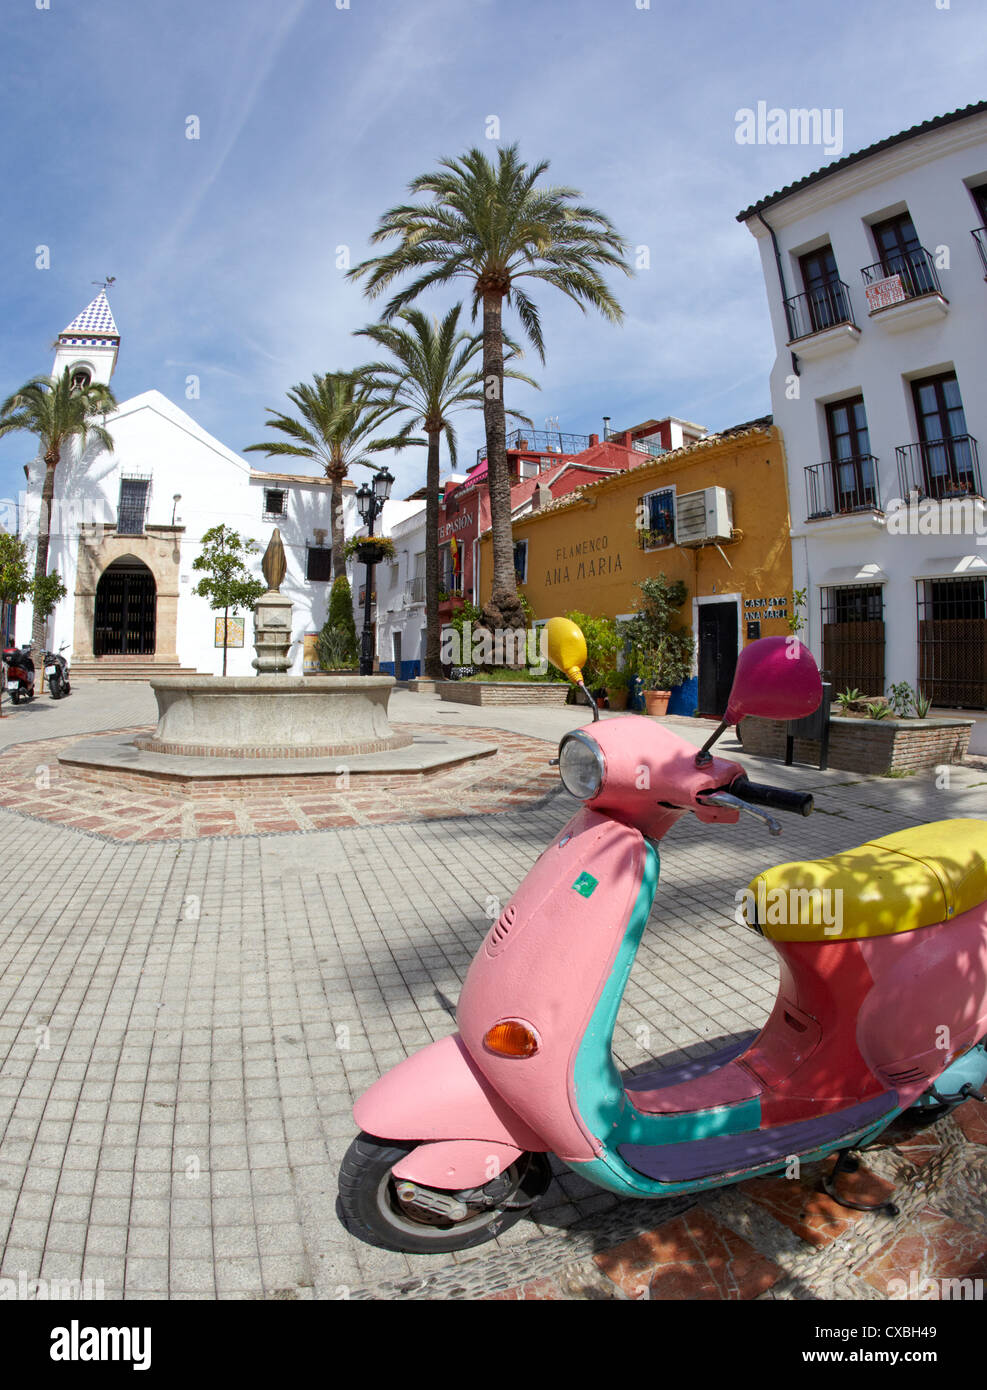 Traditional Church Square And Vespa Scooter In Marbella Old Town Spain - Stock Image